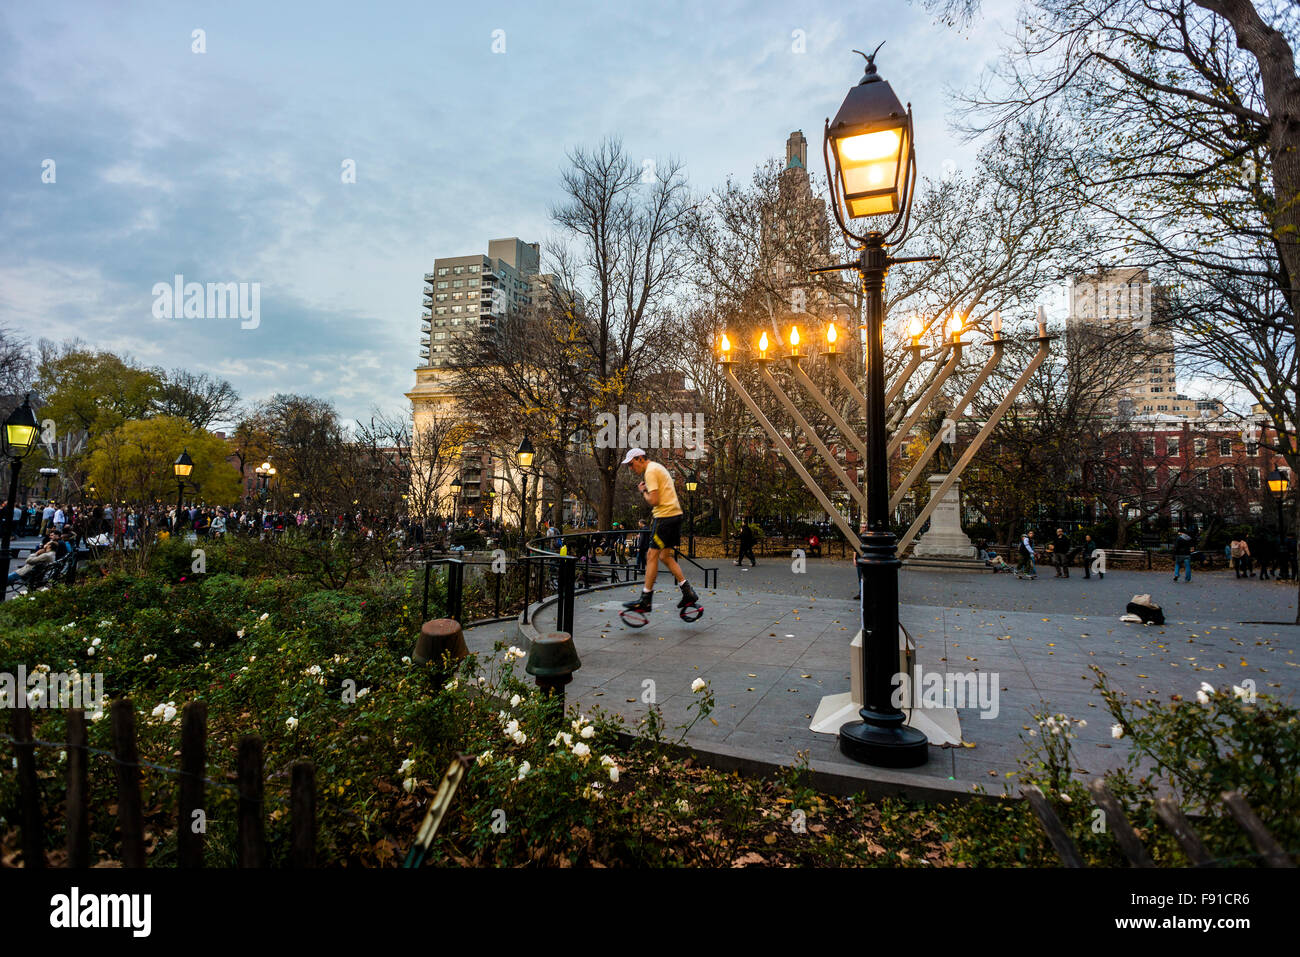 New York, NY - 12 December 2015 Chanukkah memorah in Washington Square Park - Stock Image